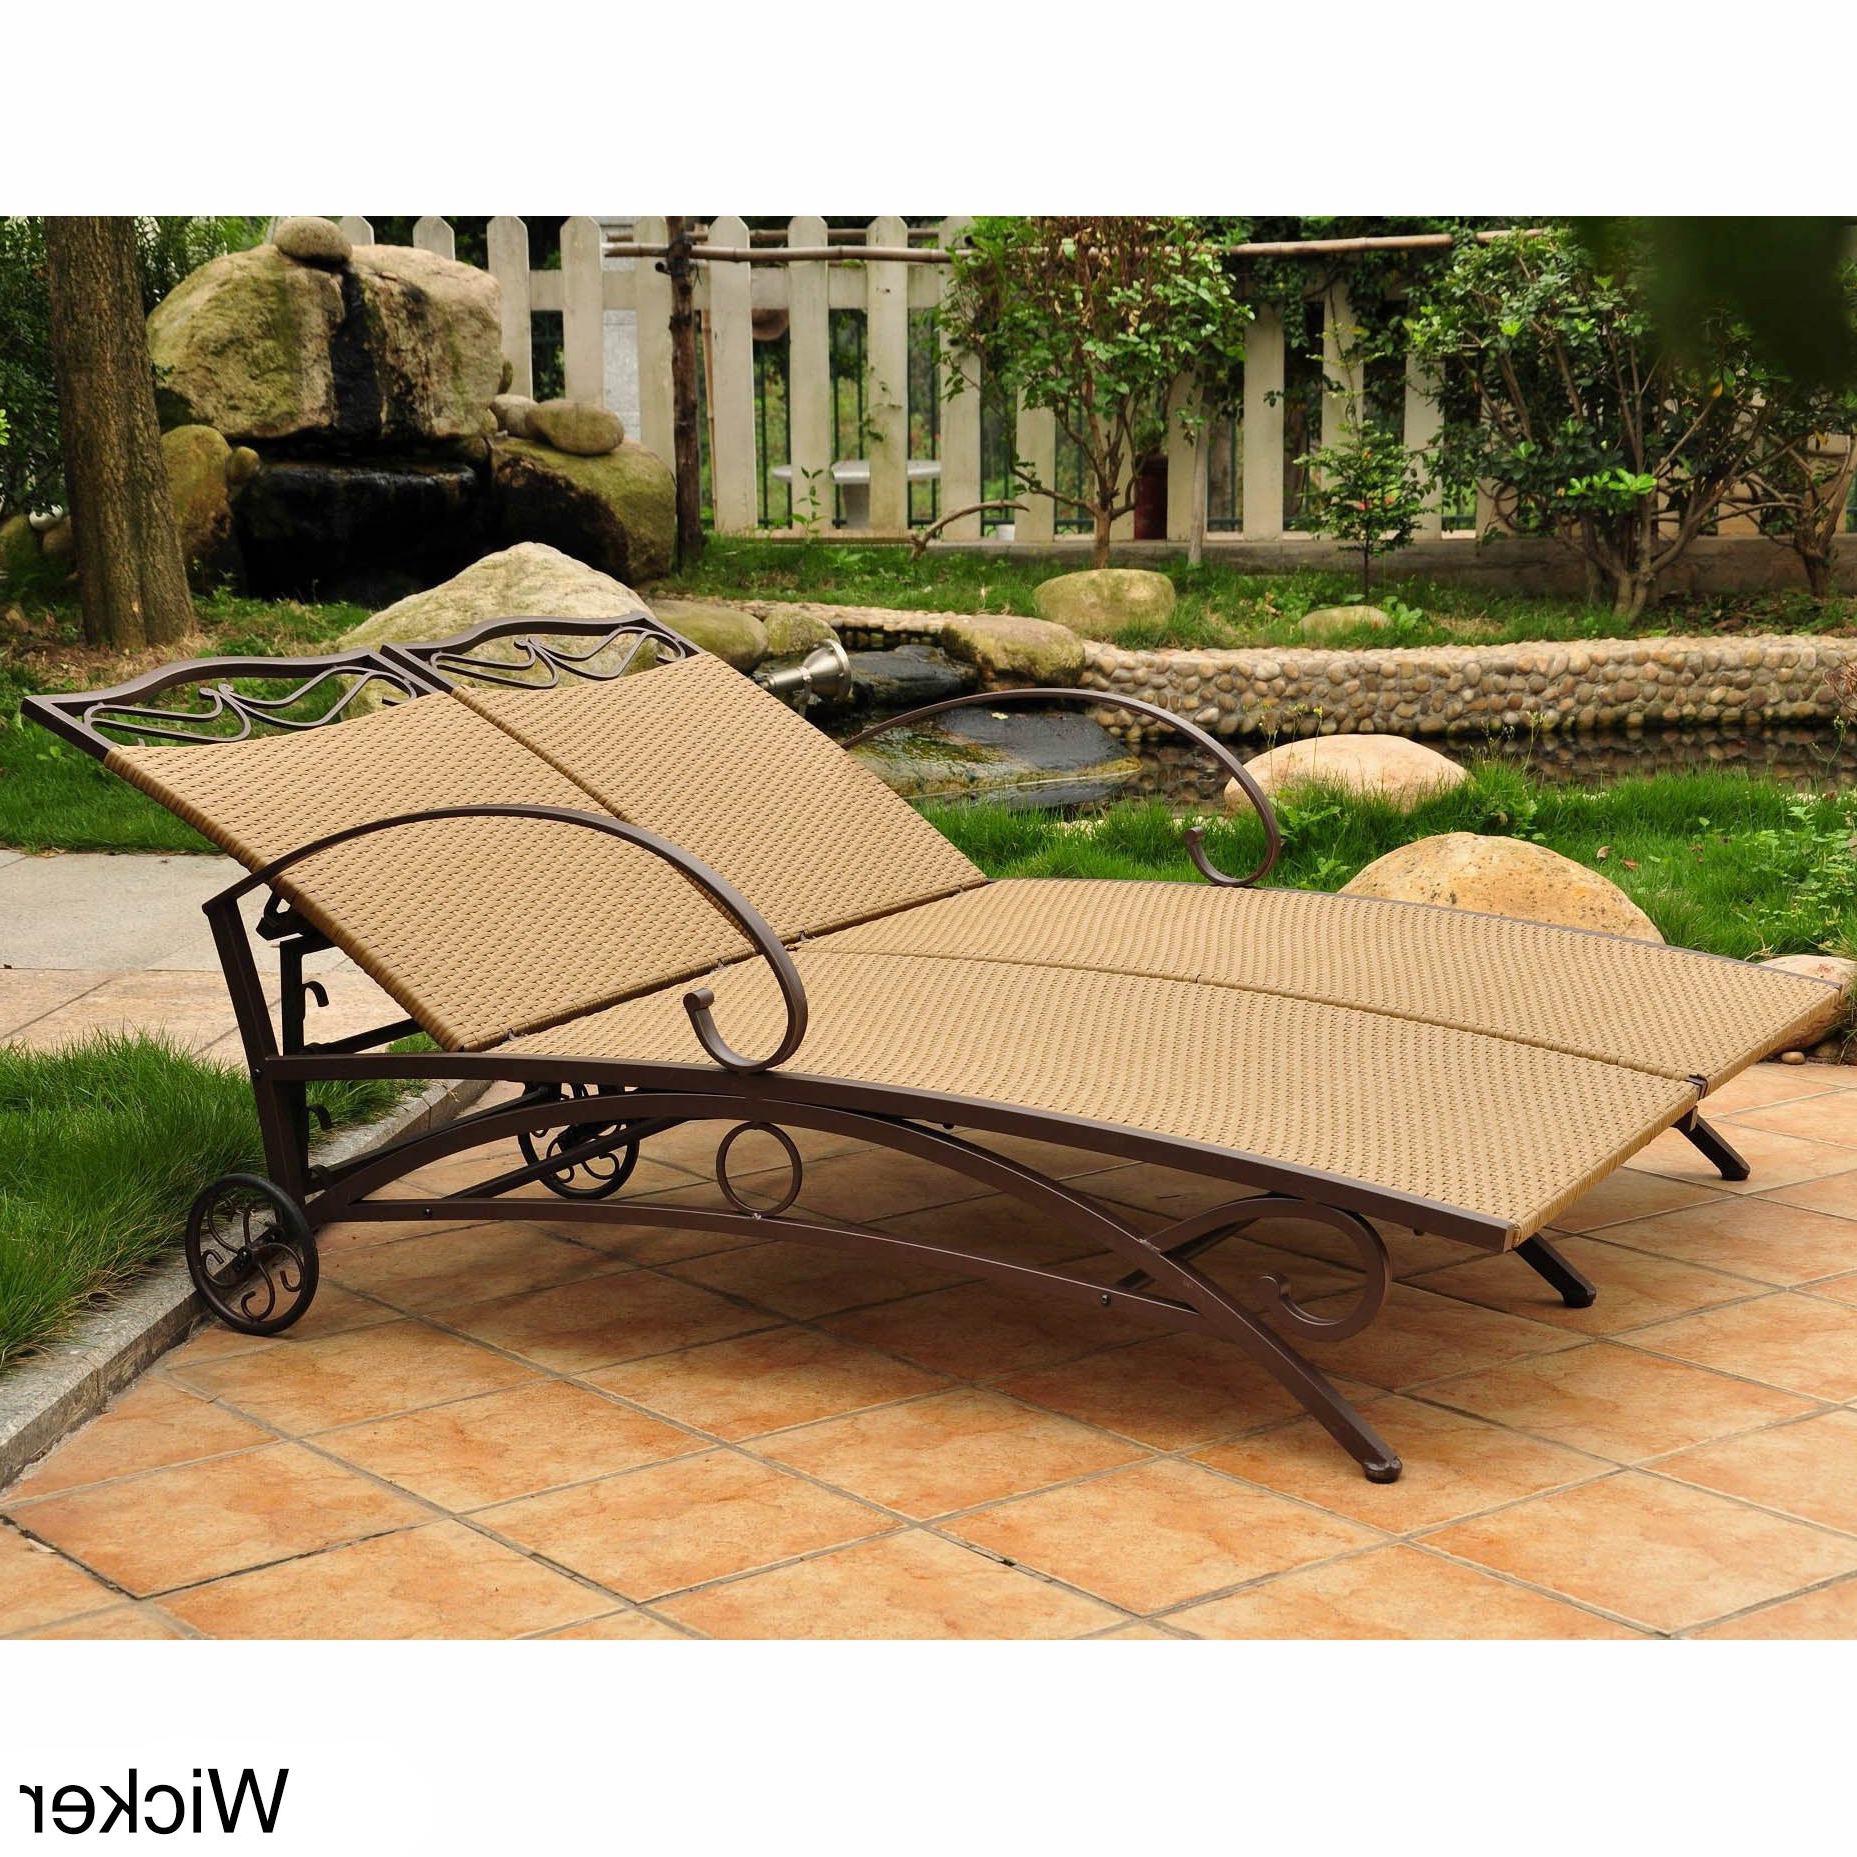 Resin Wicker Multi Position Double Patio Chaise Lounges Intended For Favorite International Caravan Valencia Resin Wicker Multi Position Double Patio Chaise Lounge (View 2 of 25)